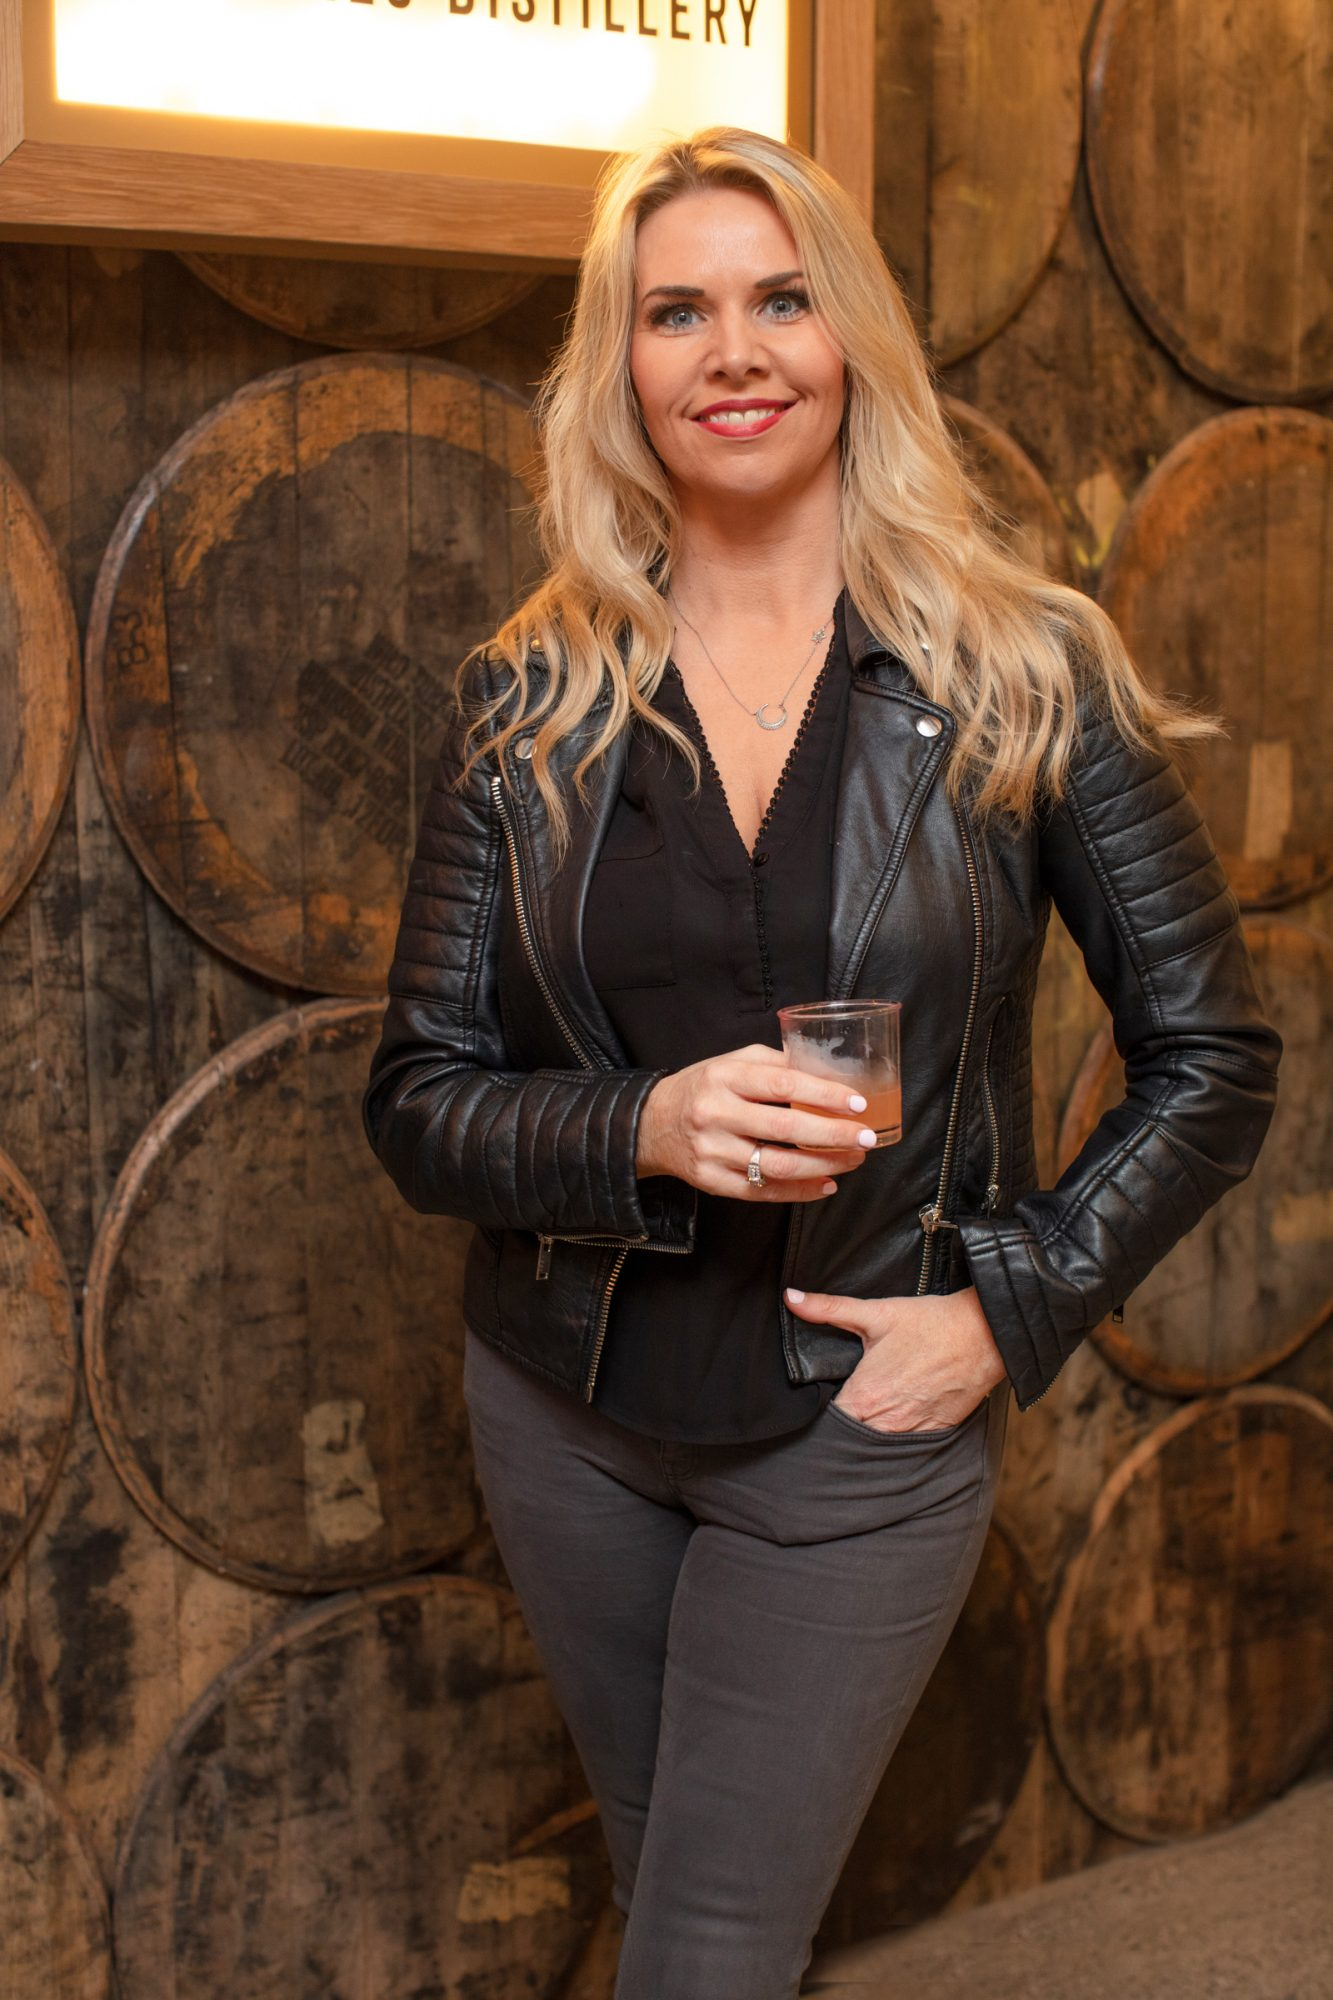 Jules Mahon pictured at the preview of The Dublin Liberties Distillery, the much anticipated new craft distillery in the heart of the Liberties. Photo: Anthony Woods.